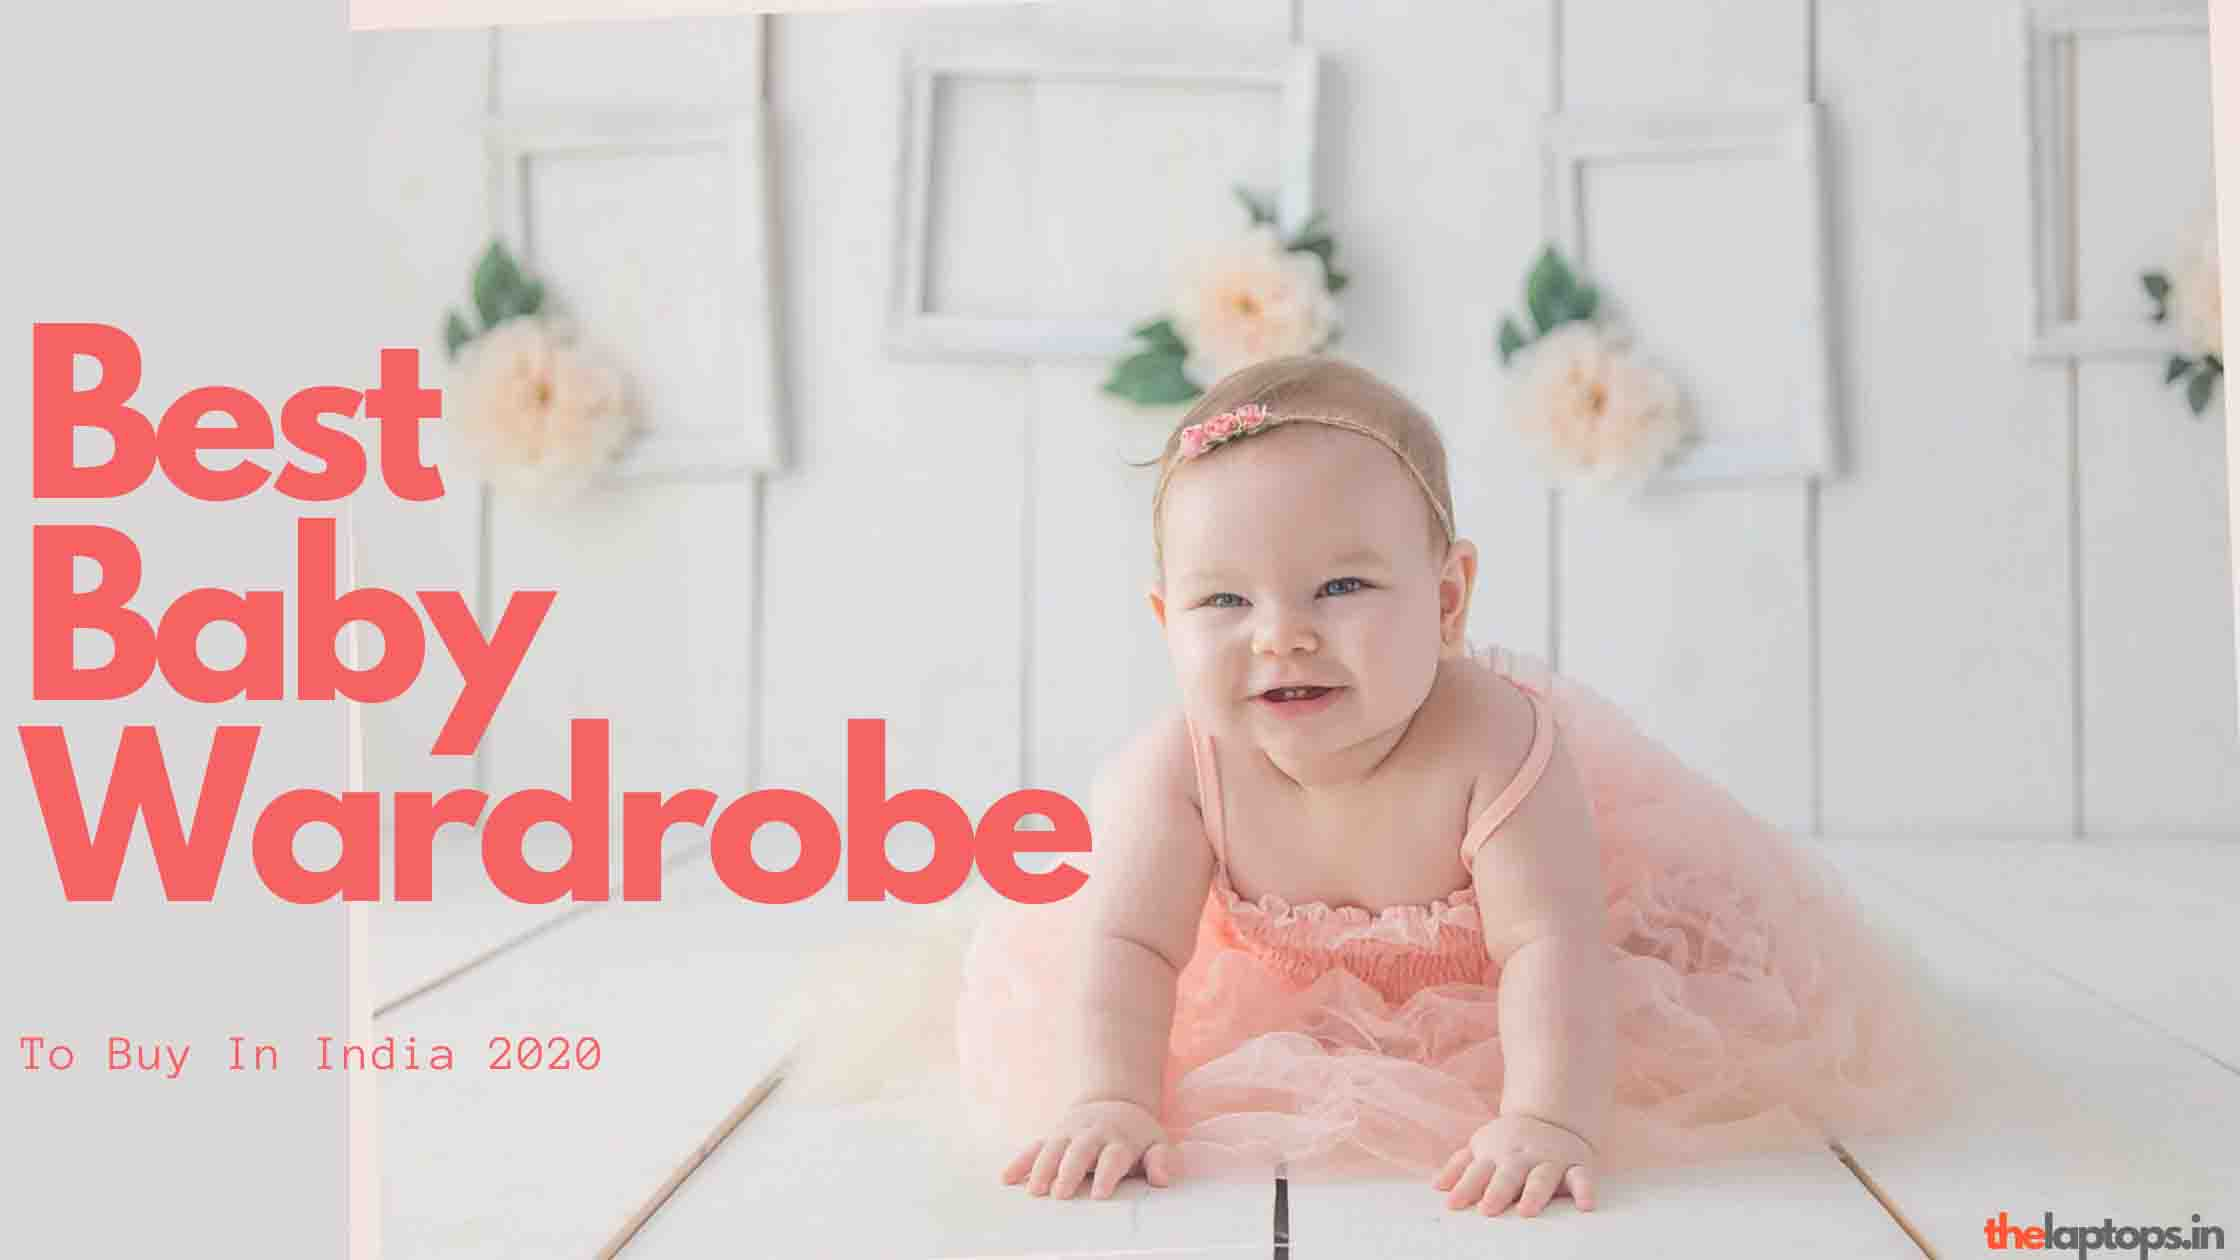 Best Baby Wardrobes To Buy In India 2020